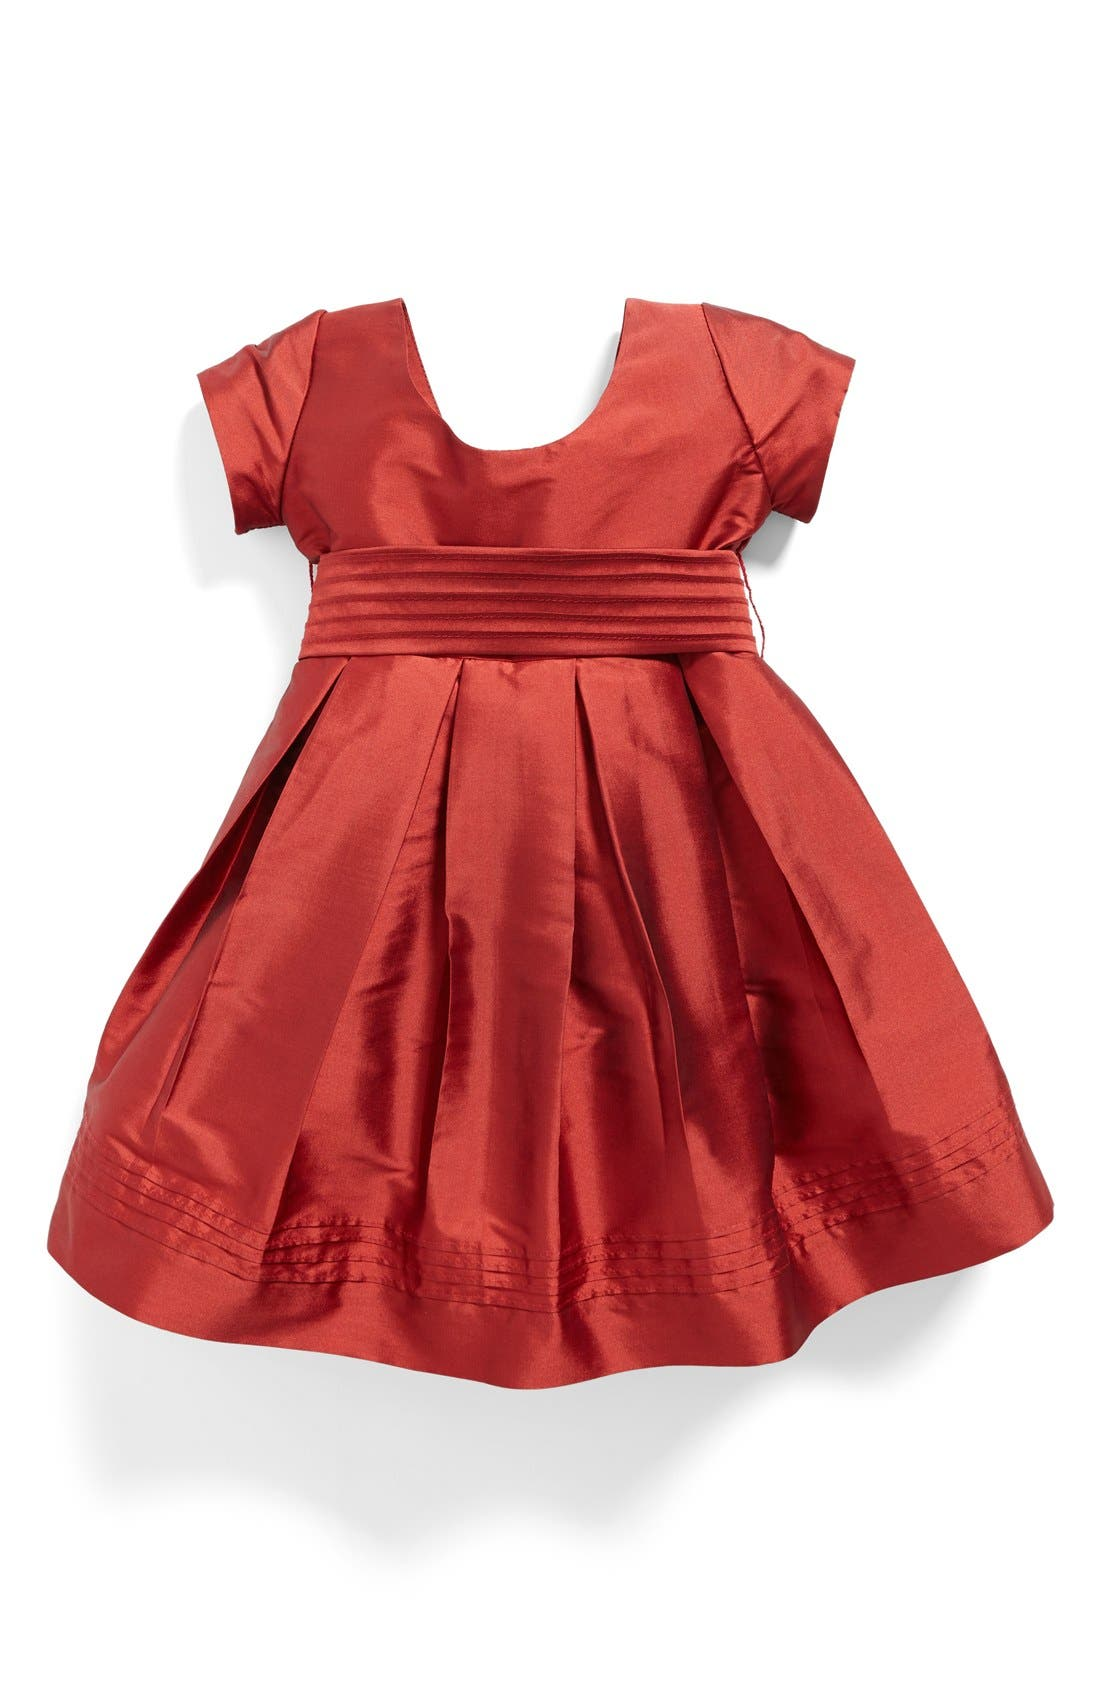 Main Image - Isabel Garreton Cap Sleeve Taffeta Dress (Toddler Girls, Little Girls & Big Girls)